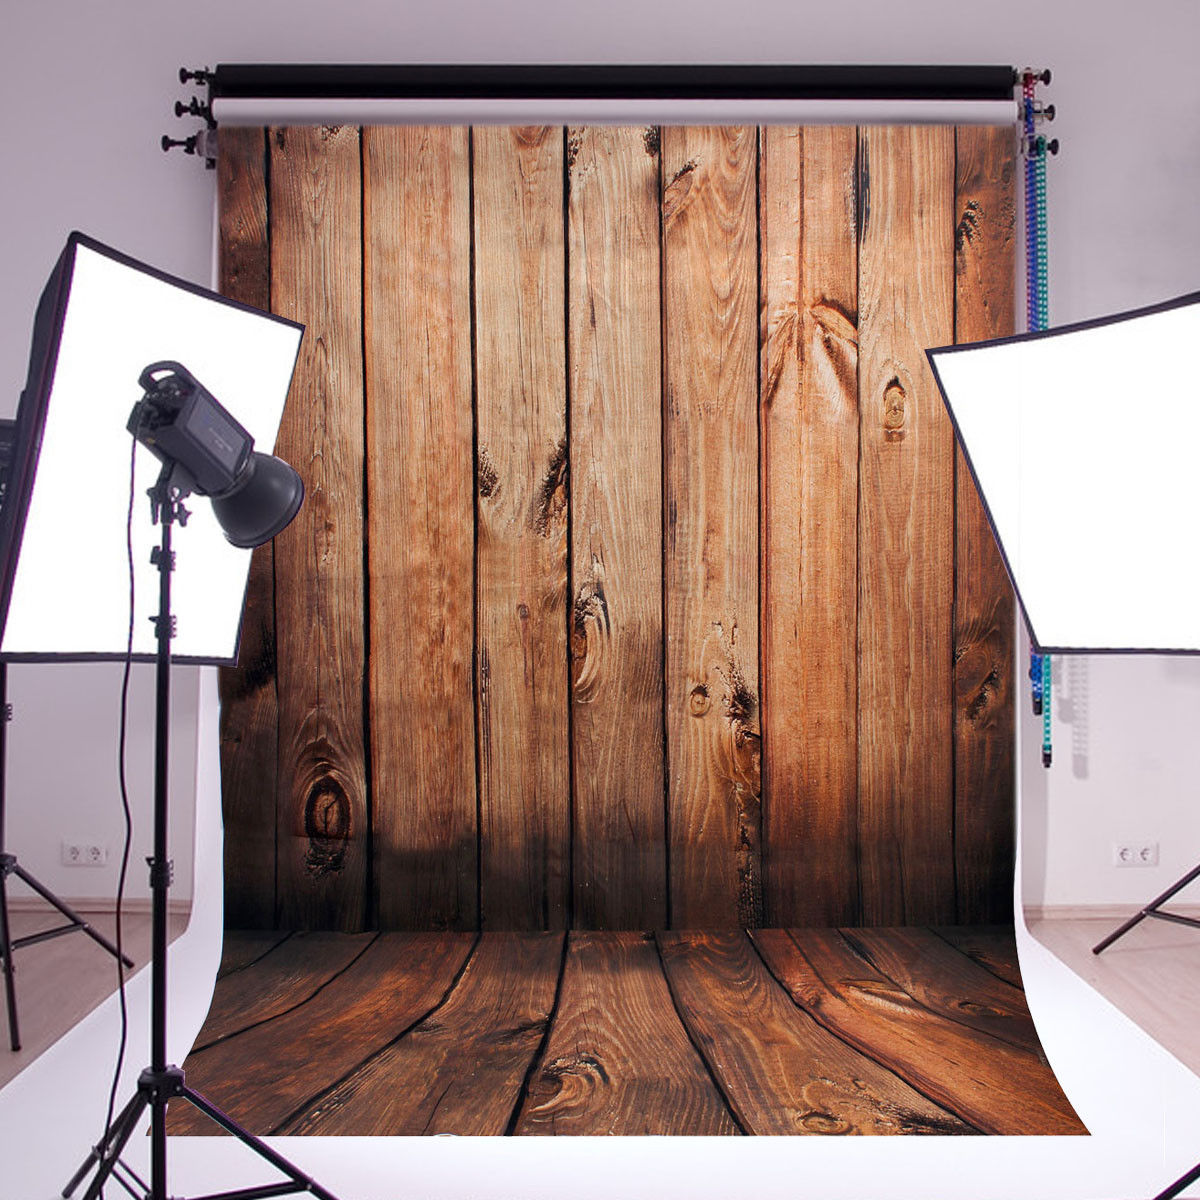 Photography Backdrops vinyl background for photo studio vintage wood baby background 2.1*1.5m Hot Sale sjoloon super hero scene photgraphy backdrops baby photography background party photo background picture fond photo studio vinyl